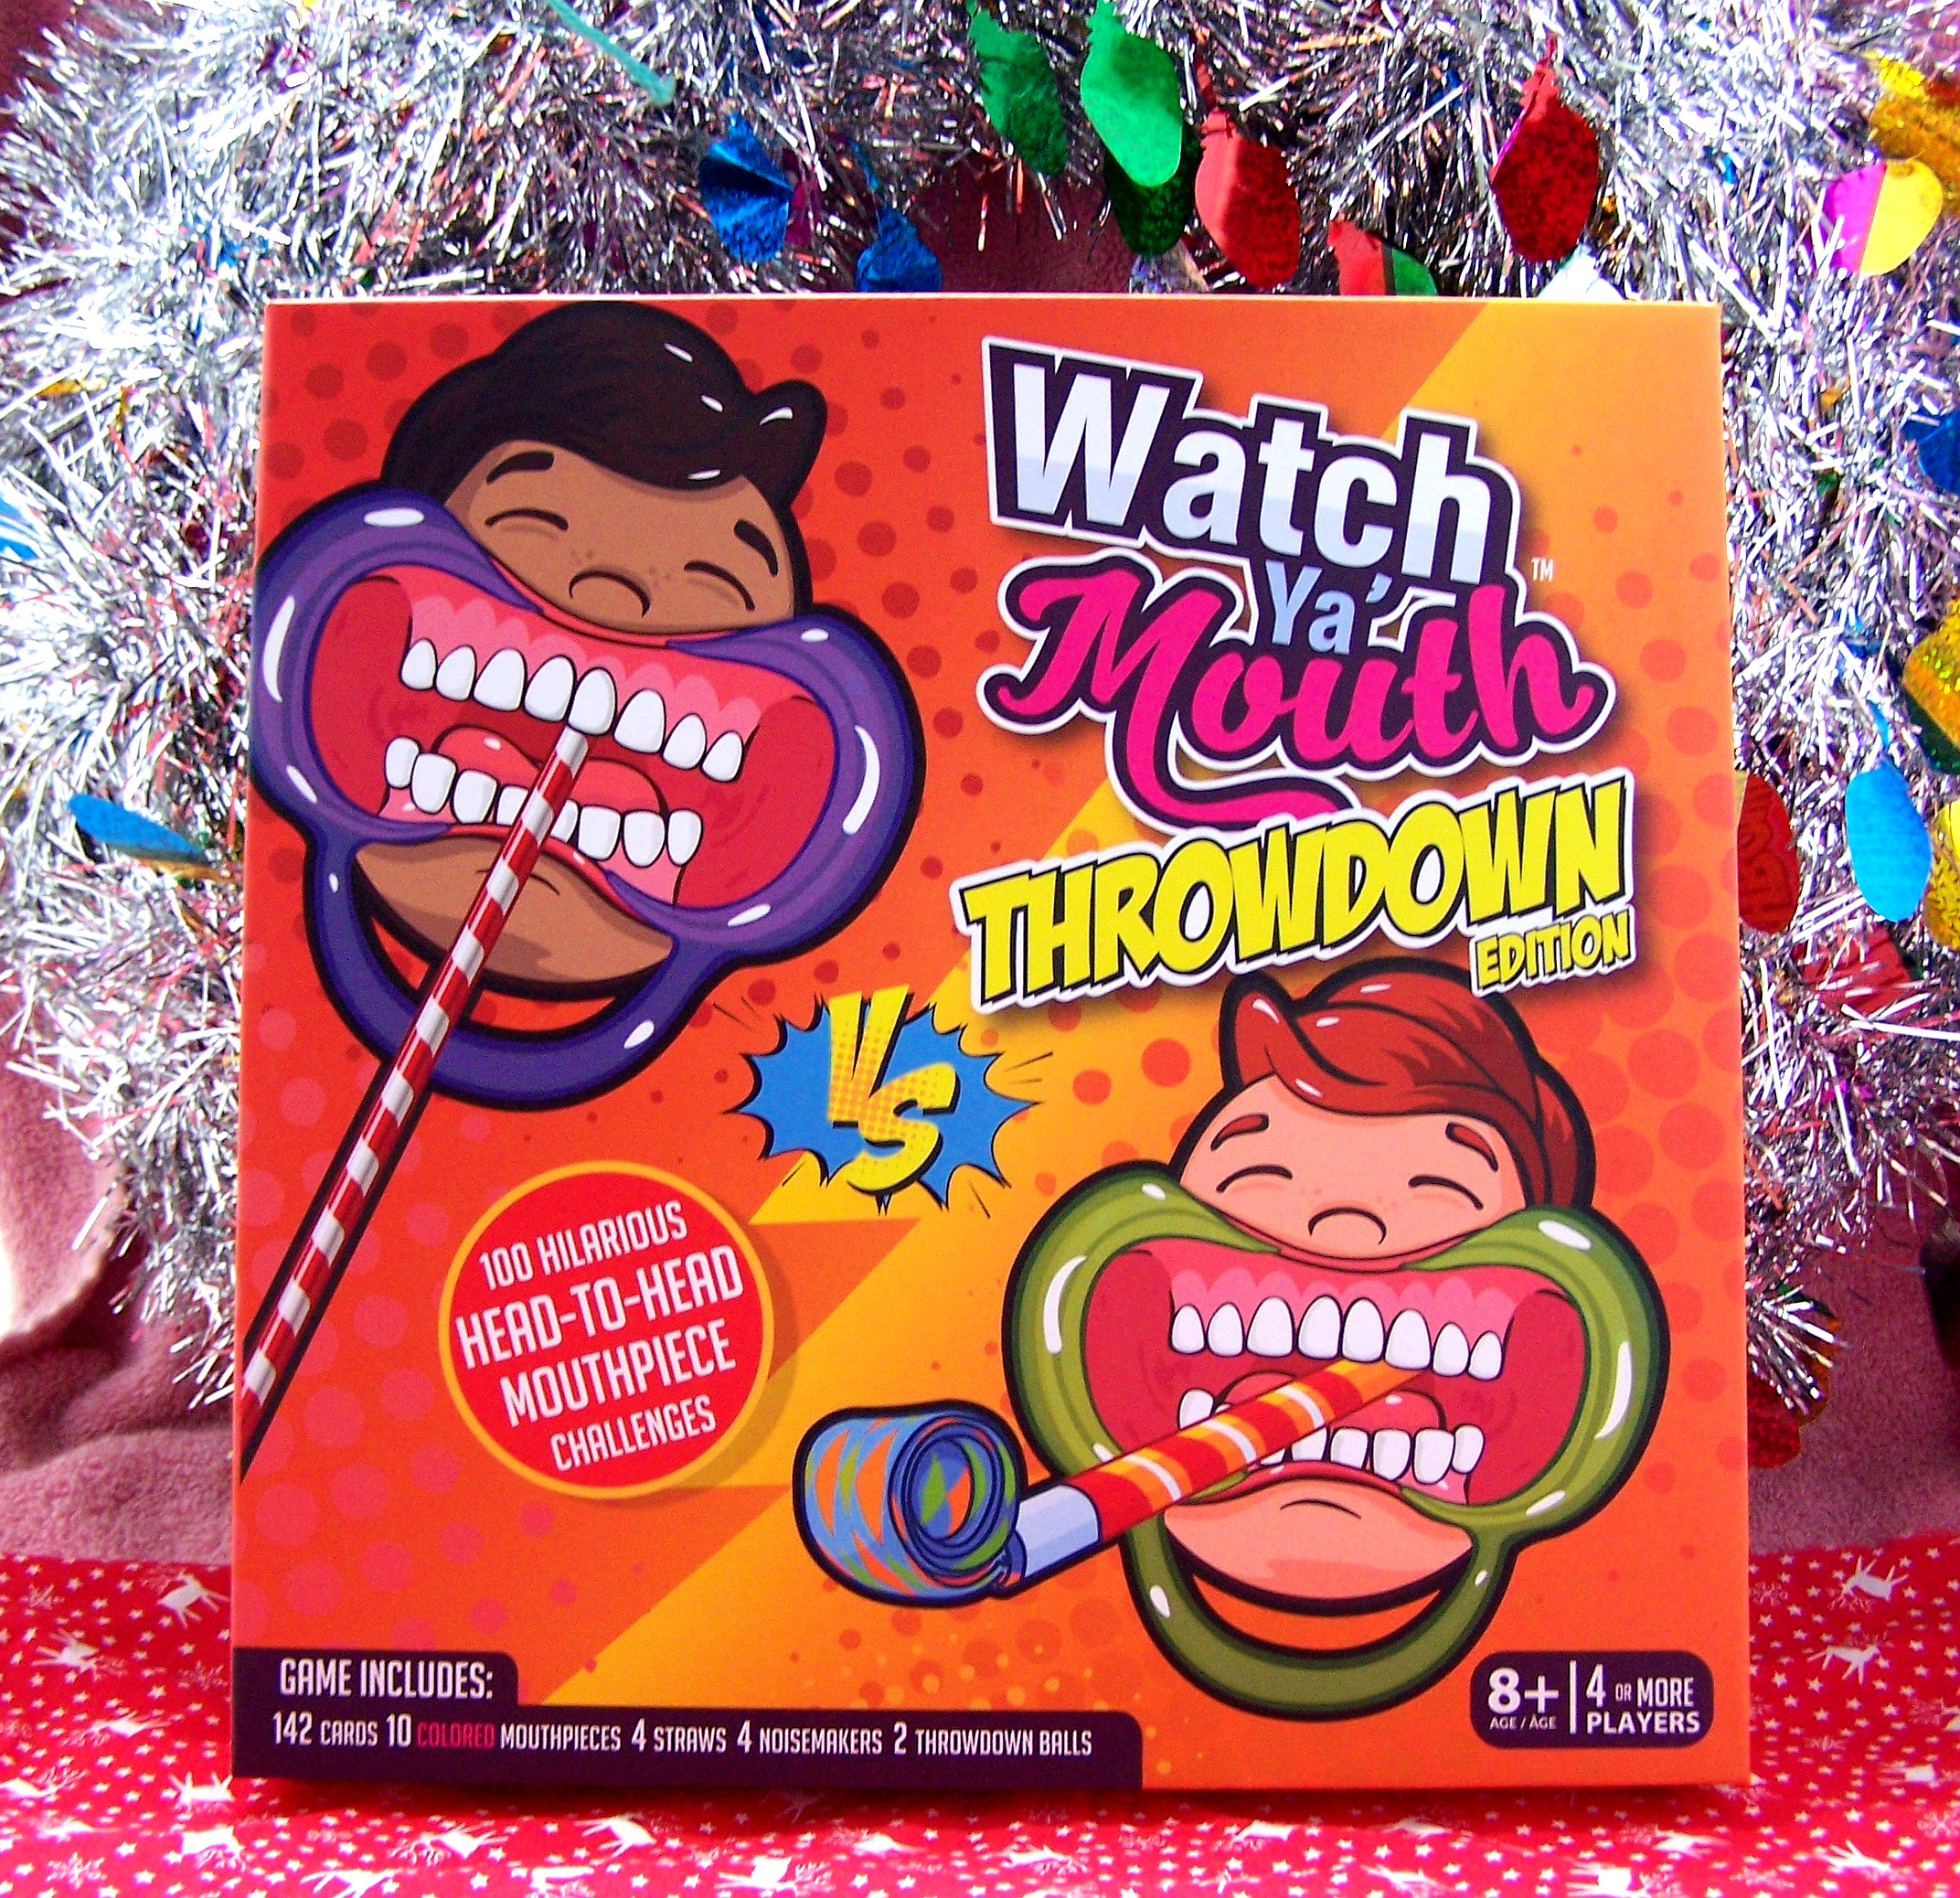 watch ya mouth game boardgame play kids christmas holiday gift guide hgg 2017 chilren family parents playing fun laughter best new christmas gifts